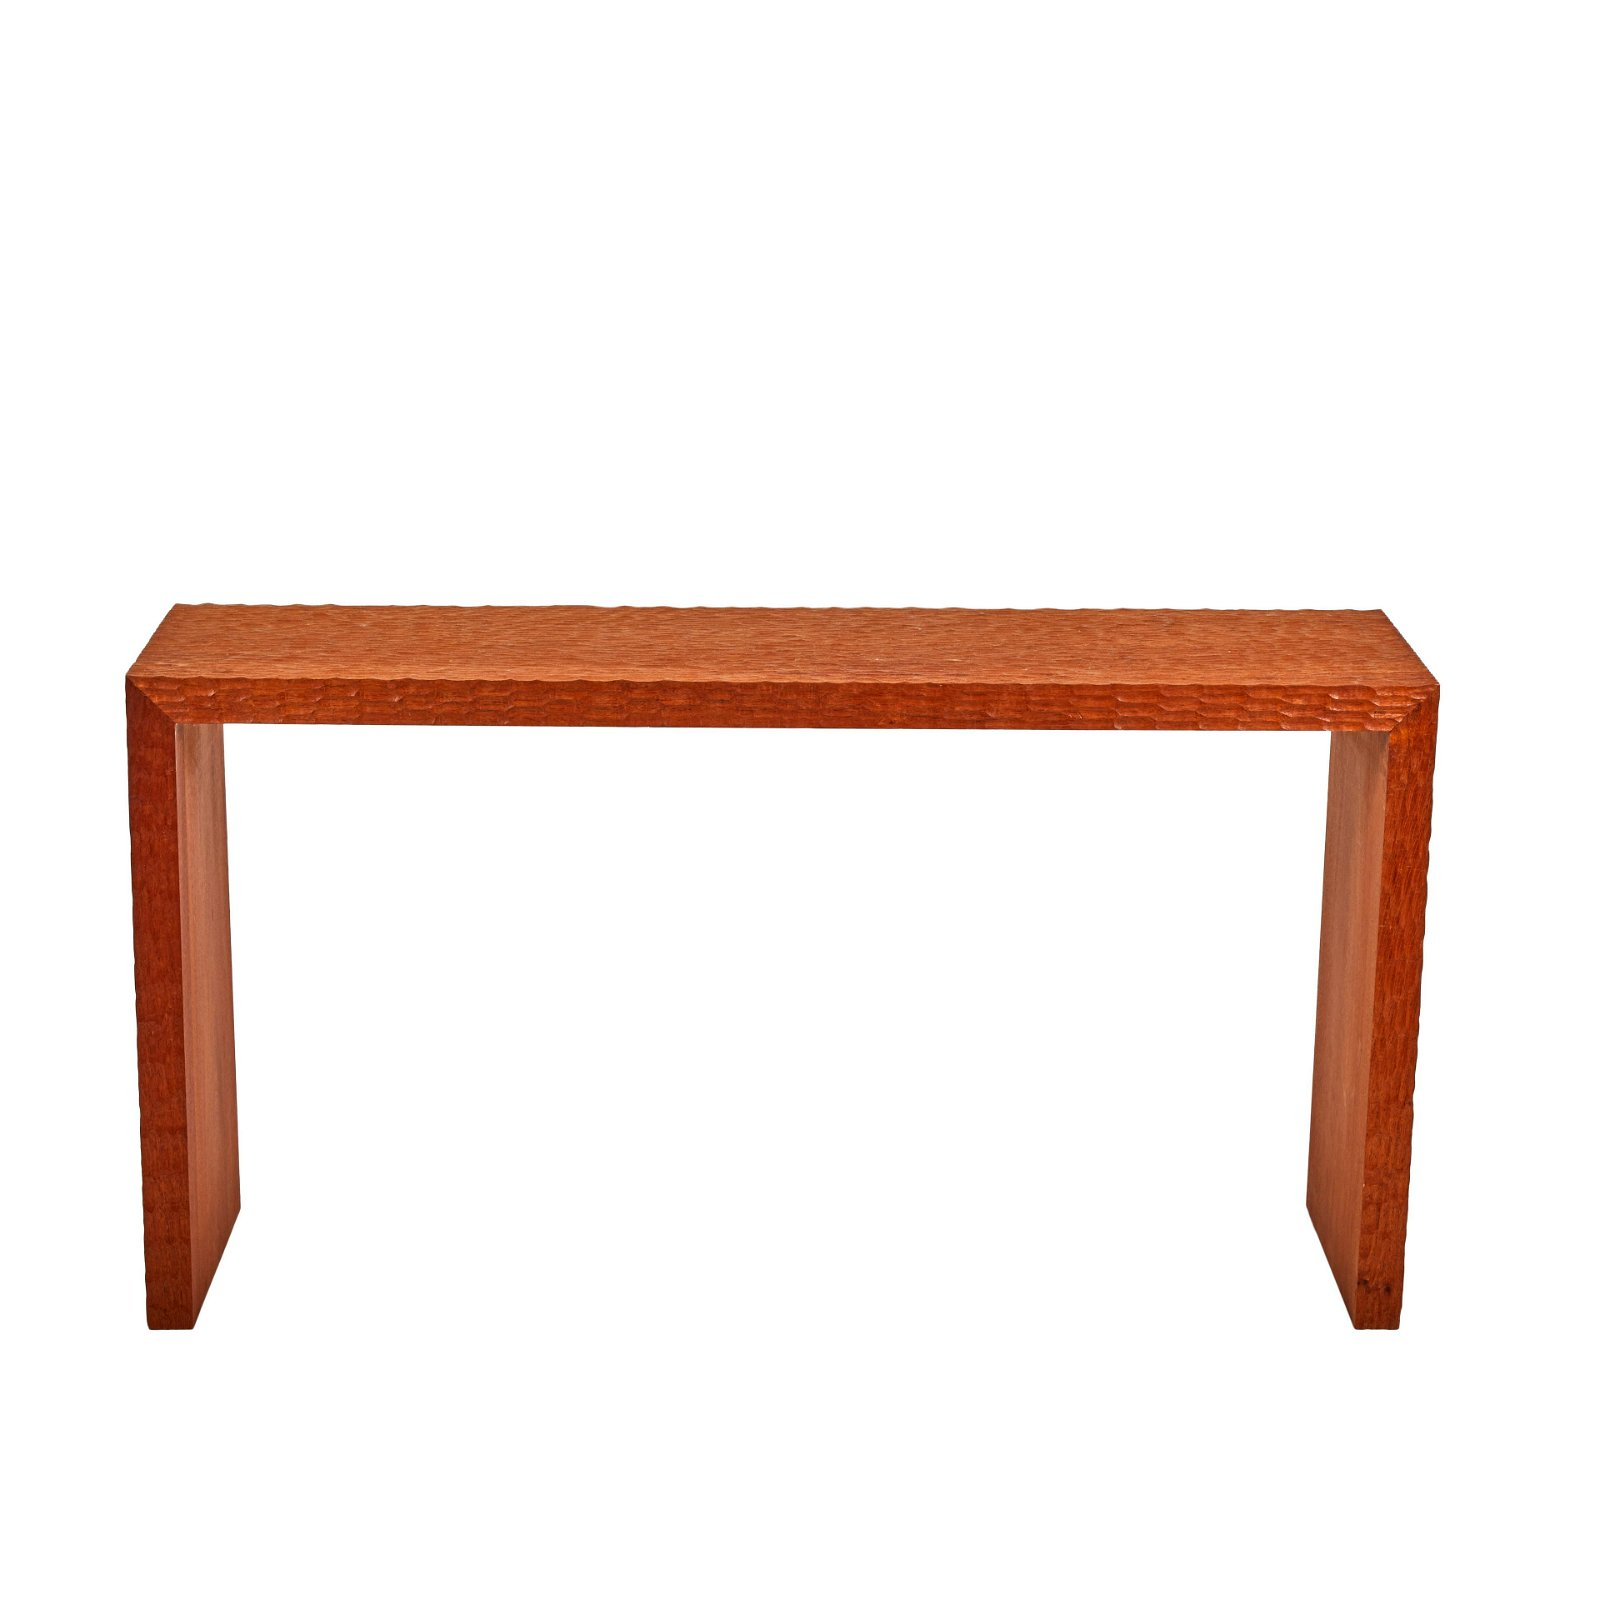 Jean-Michel Frank Style Chip-Carved Console Table